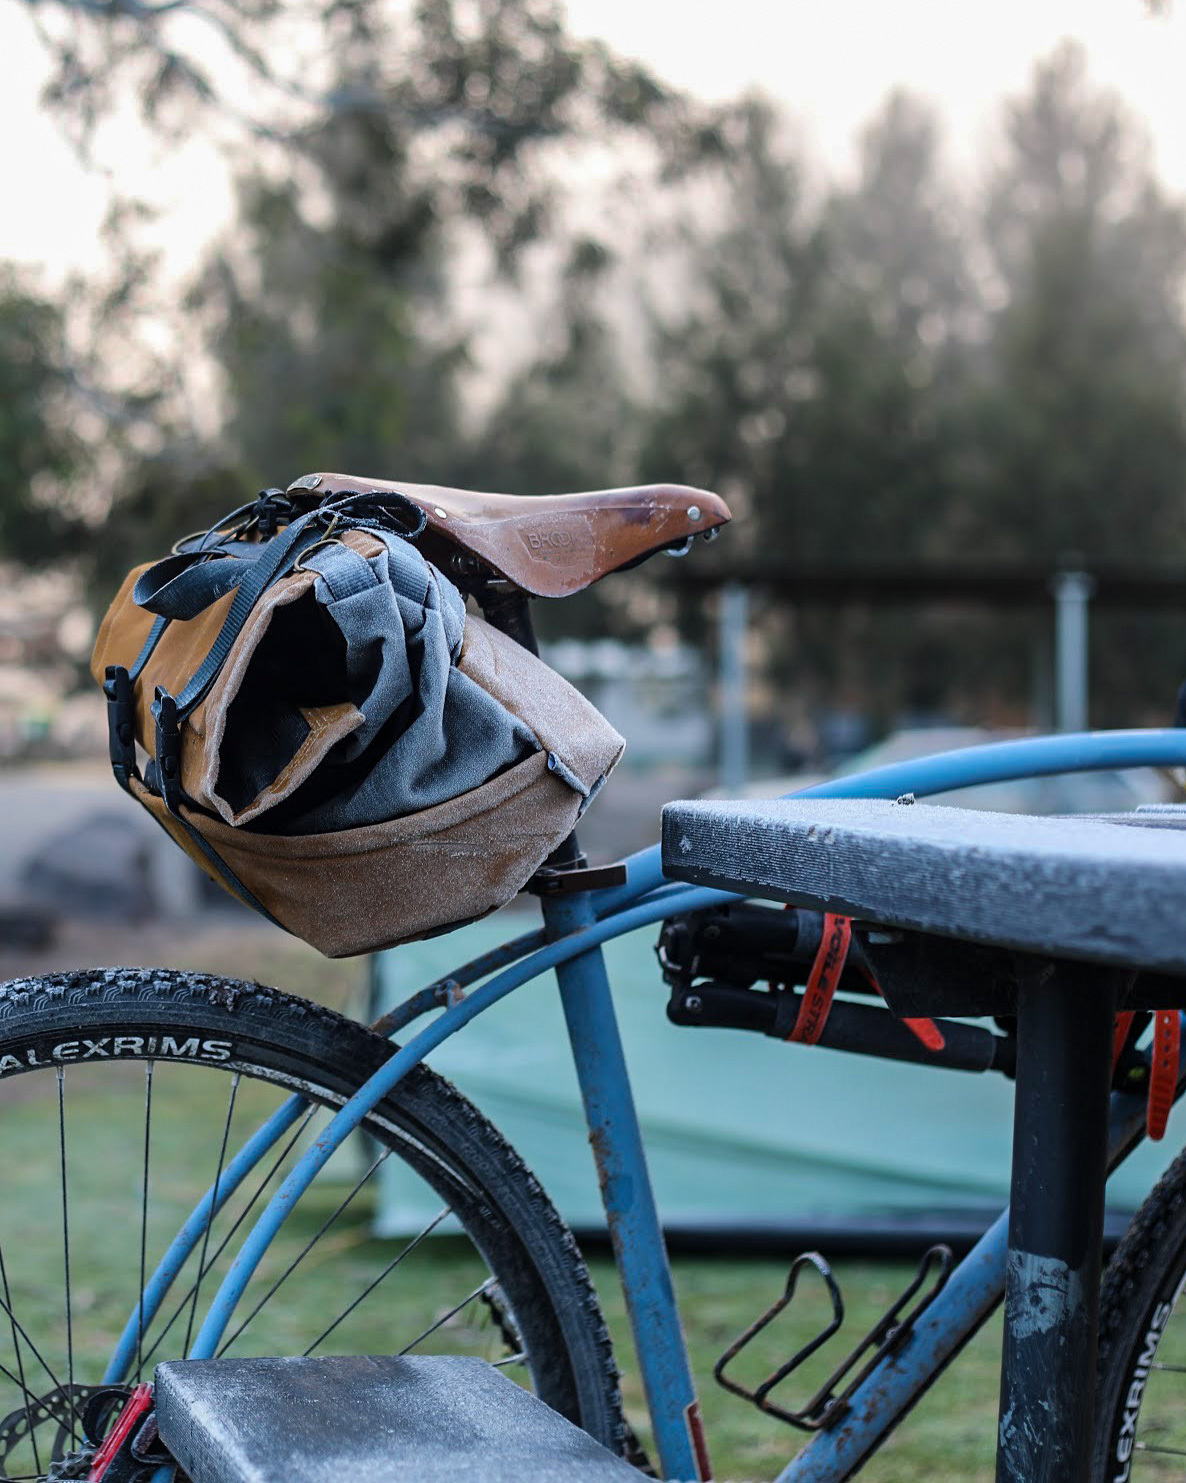 Frosty bikepacking bike the morning after Swift Campout